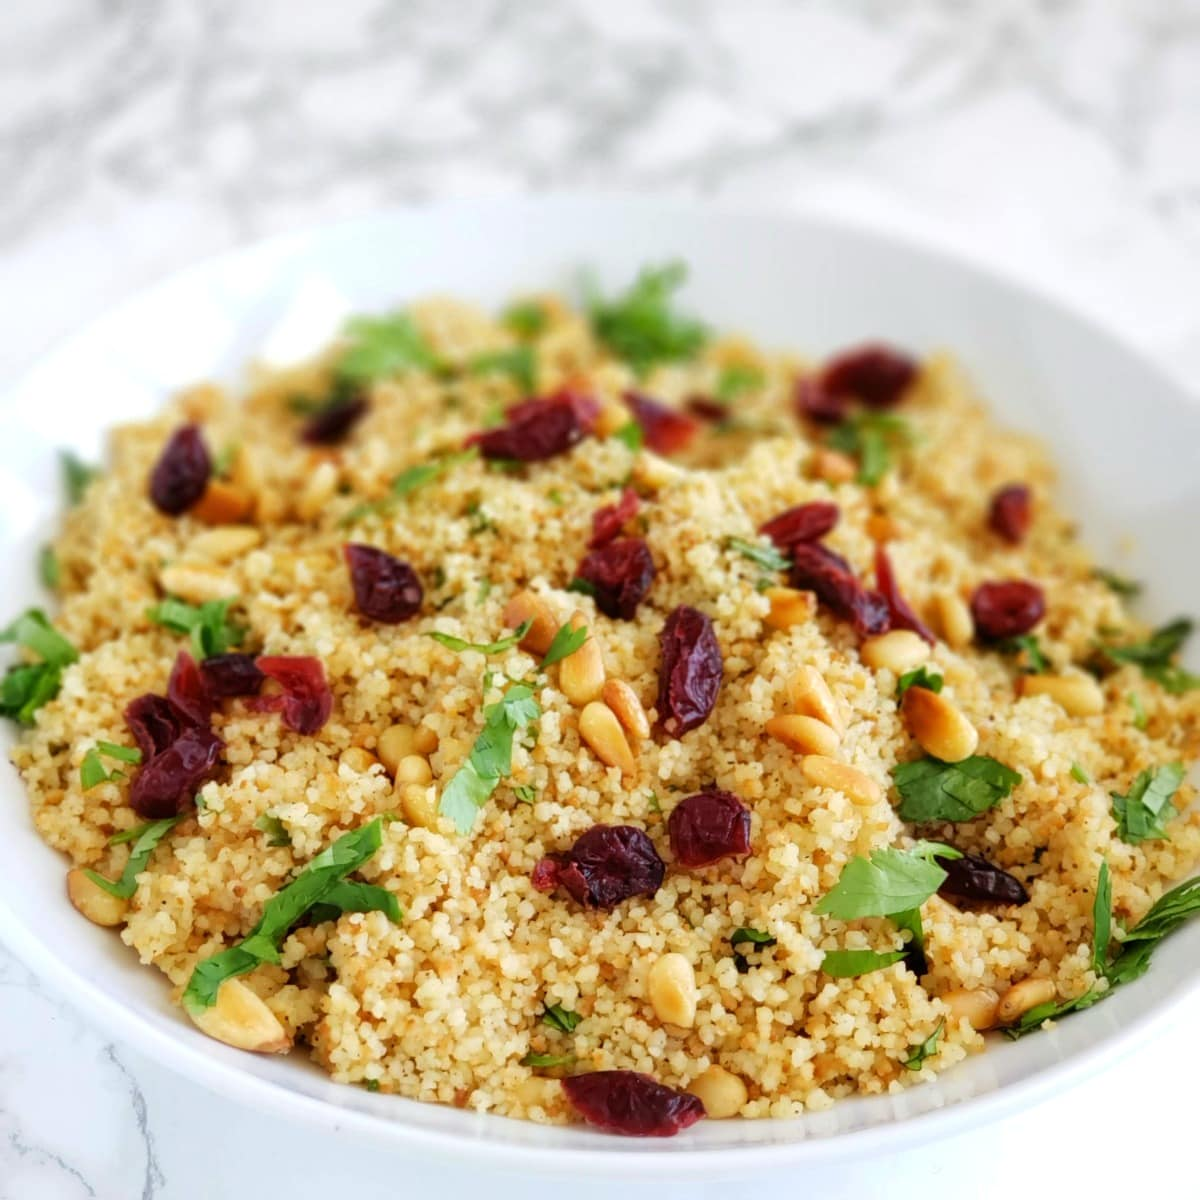 Cranberries on top of couscous